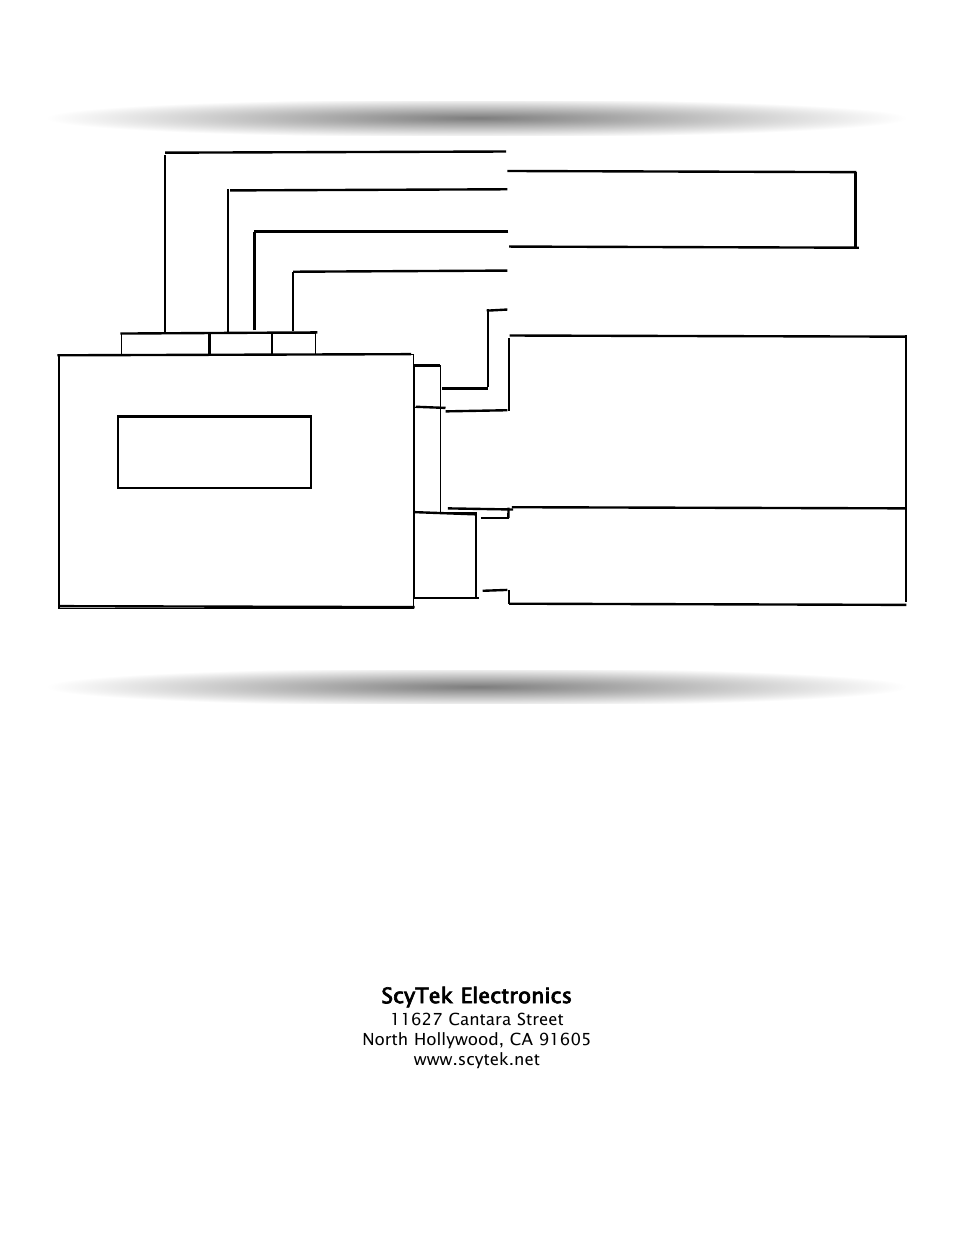 scytek electronics a10 series page20 wiring diagram, technical information, control unit a10 scytek astra 777 wiring diagram manual at bayanpartner.co